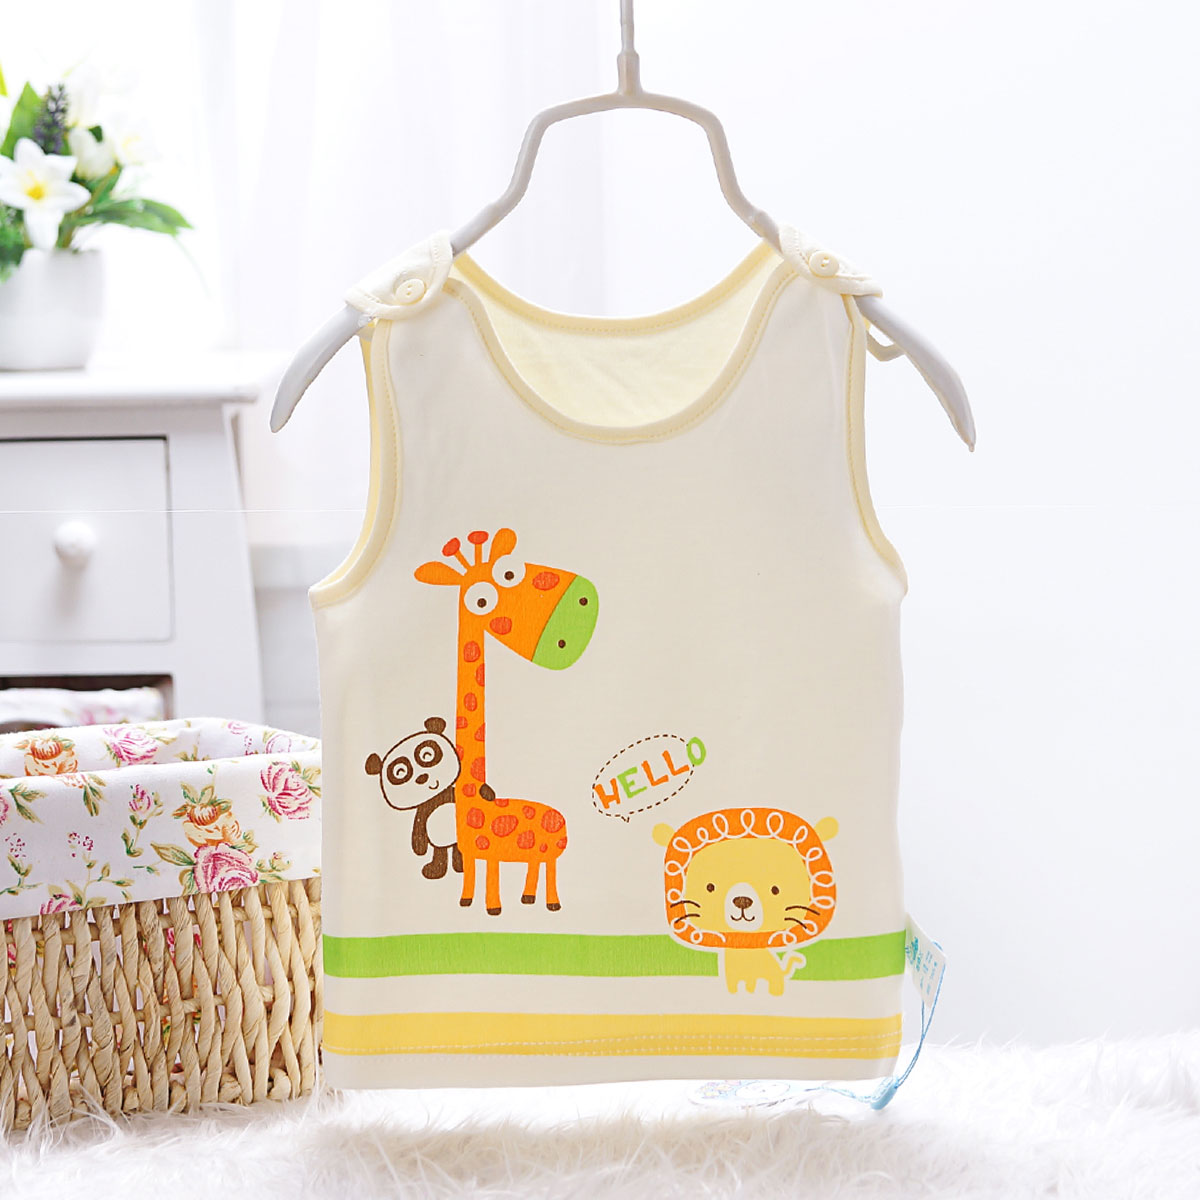 Newborn baby cotton baby vest vest for men and women shoulder buckle children's underwear vest sleeveless undershirt vest bottoming